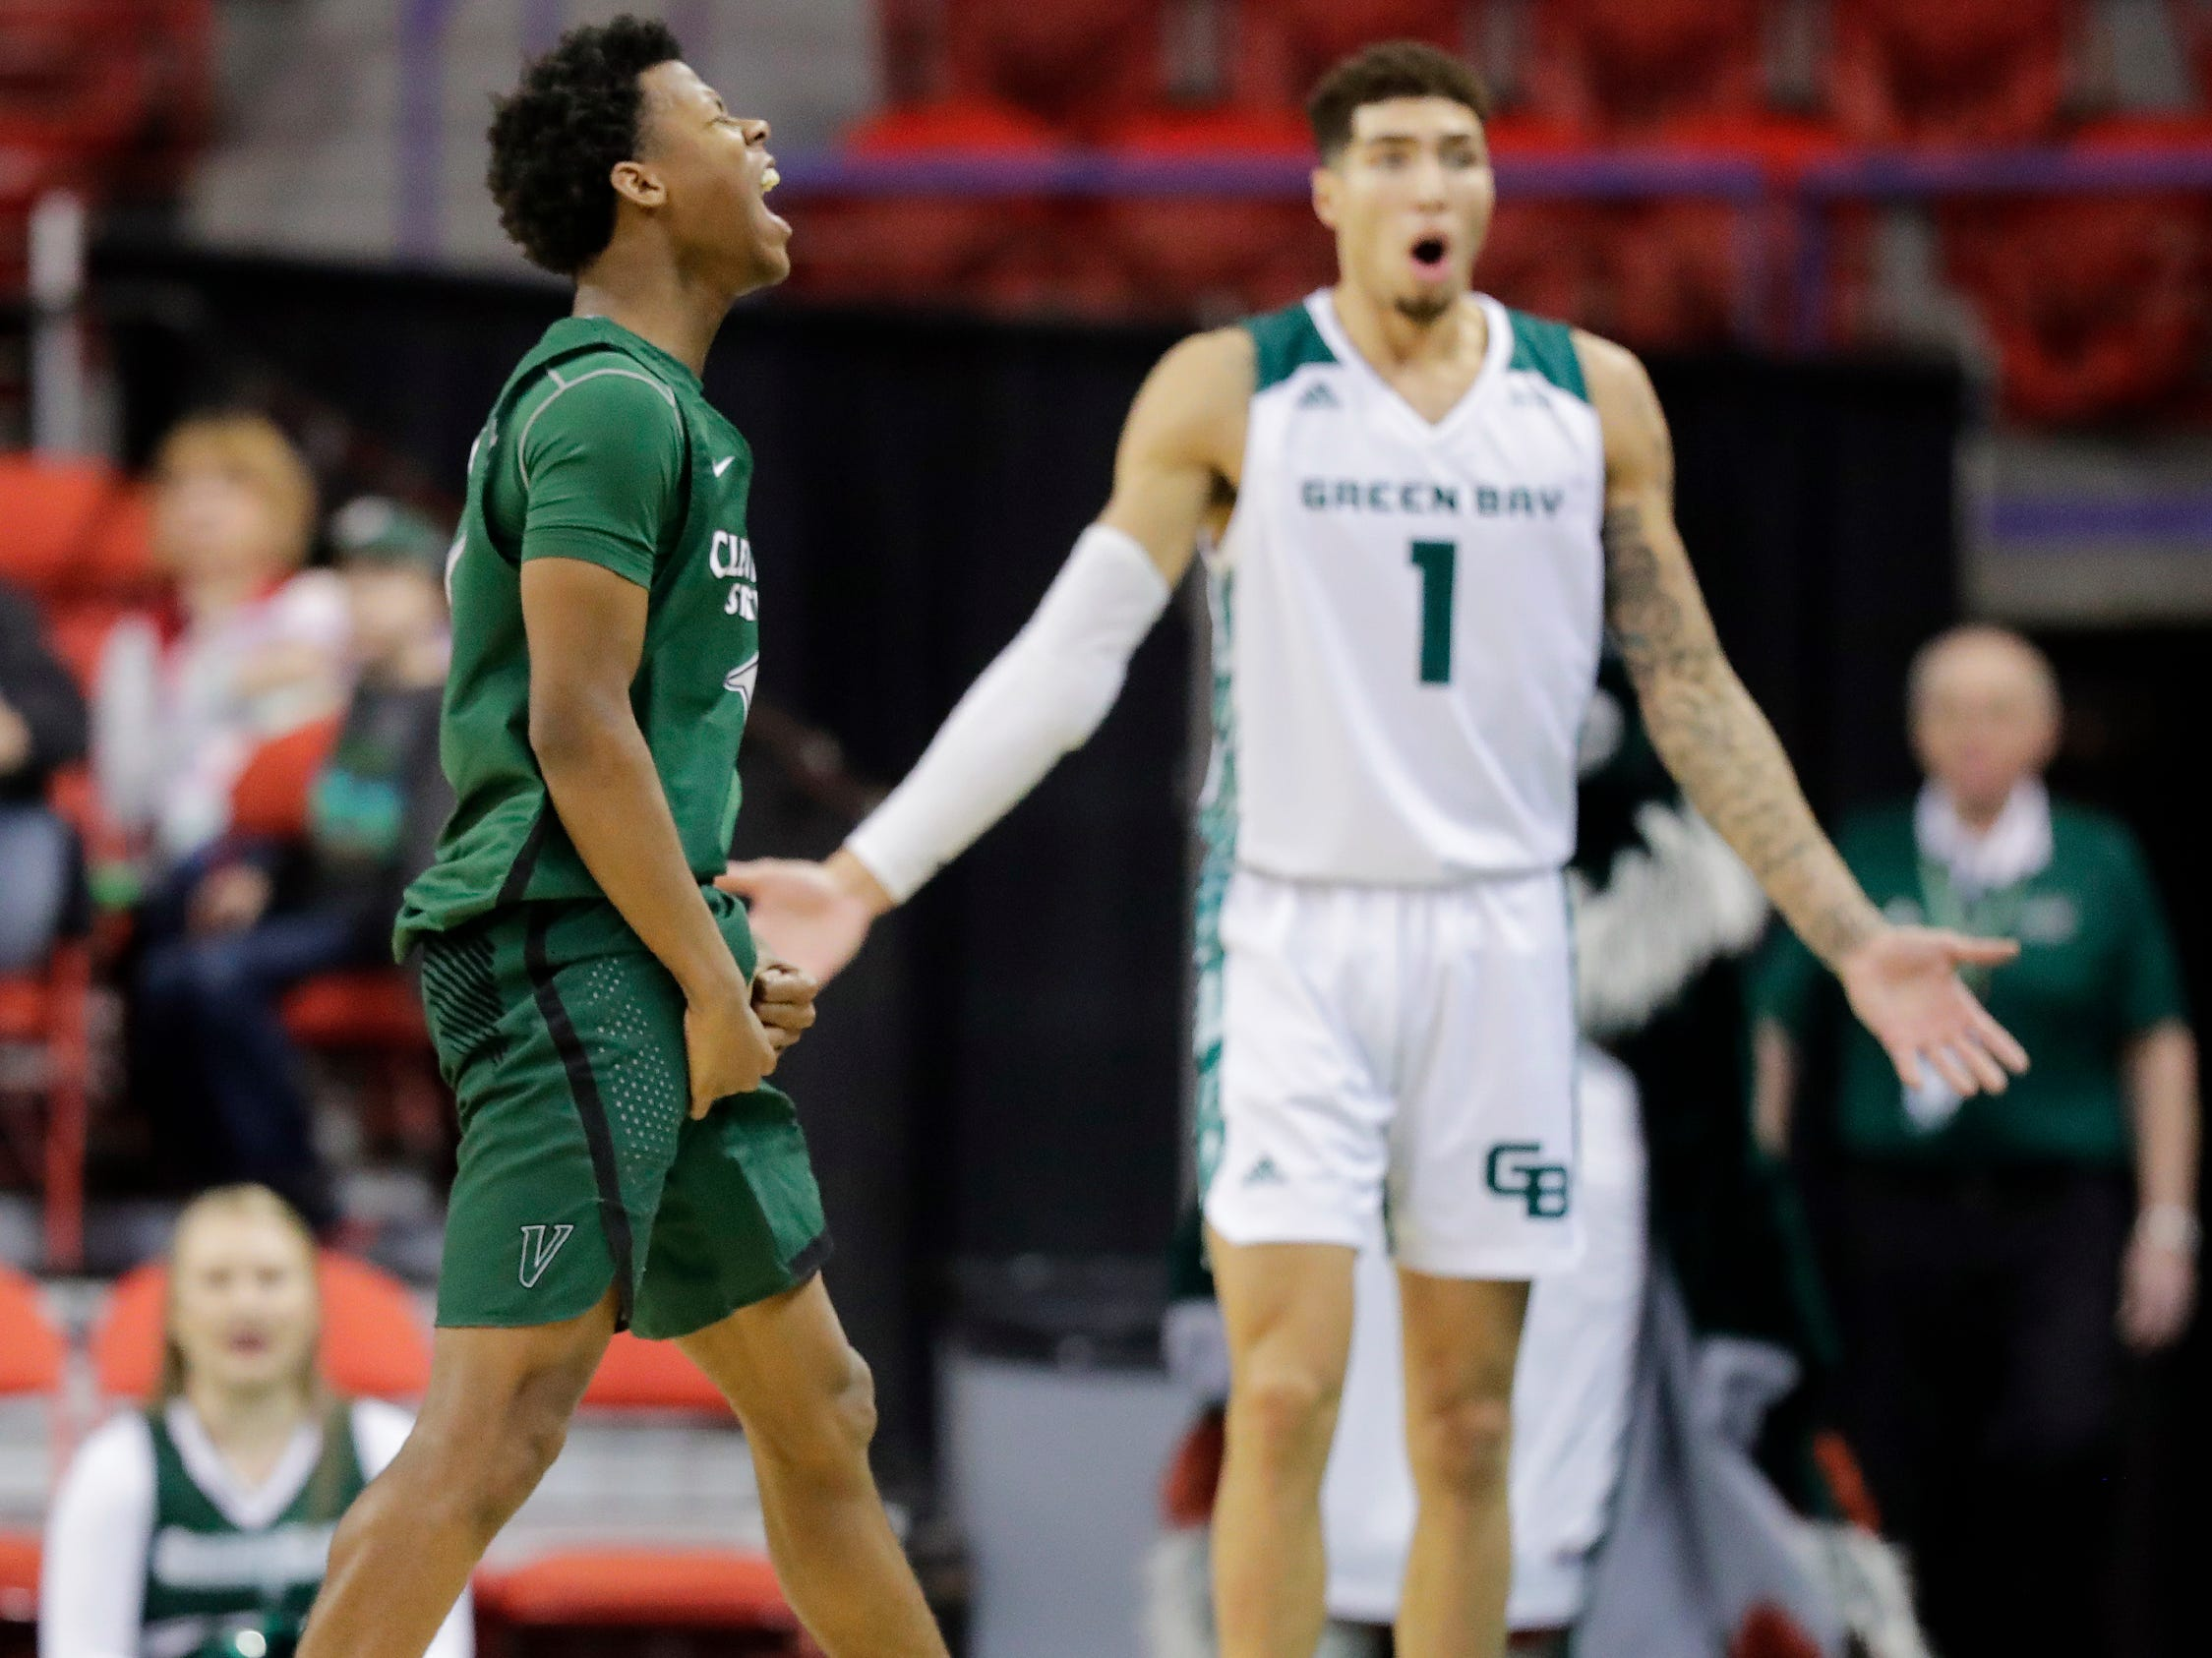 Cleveland State Vikings guard Tyree Appleby (1) reacts after getting fouled on a made three point shot by Green Bay Phoenix guard Sandy Cohen III (1) in a Horizon League basketball game at the Resch Center on Saturday, January 5, 2019 in Green Bay, Wis.